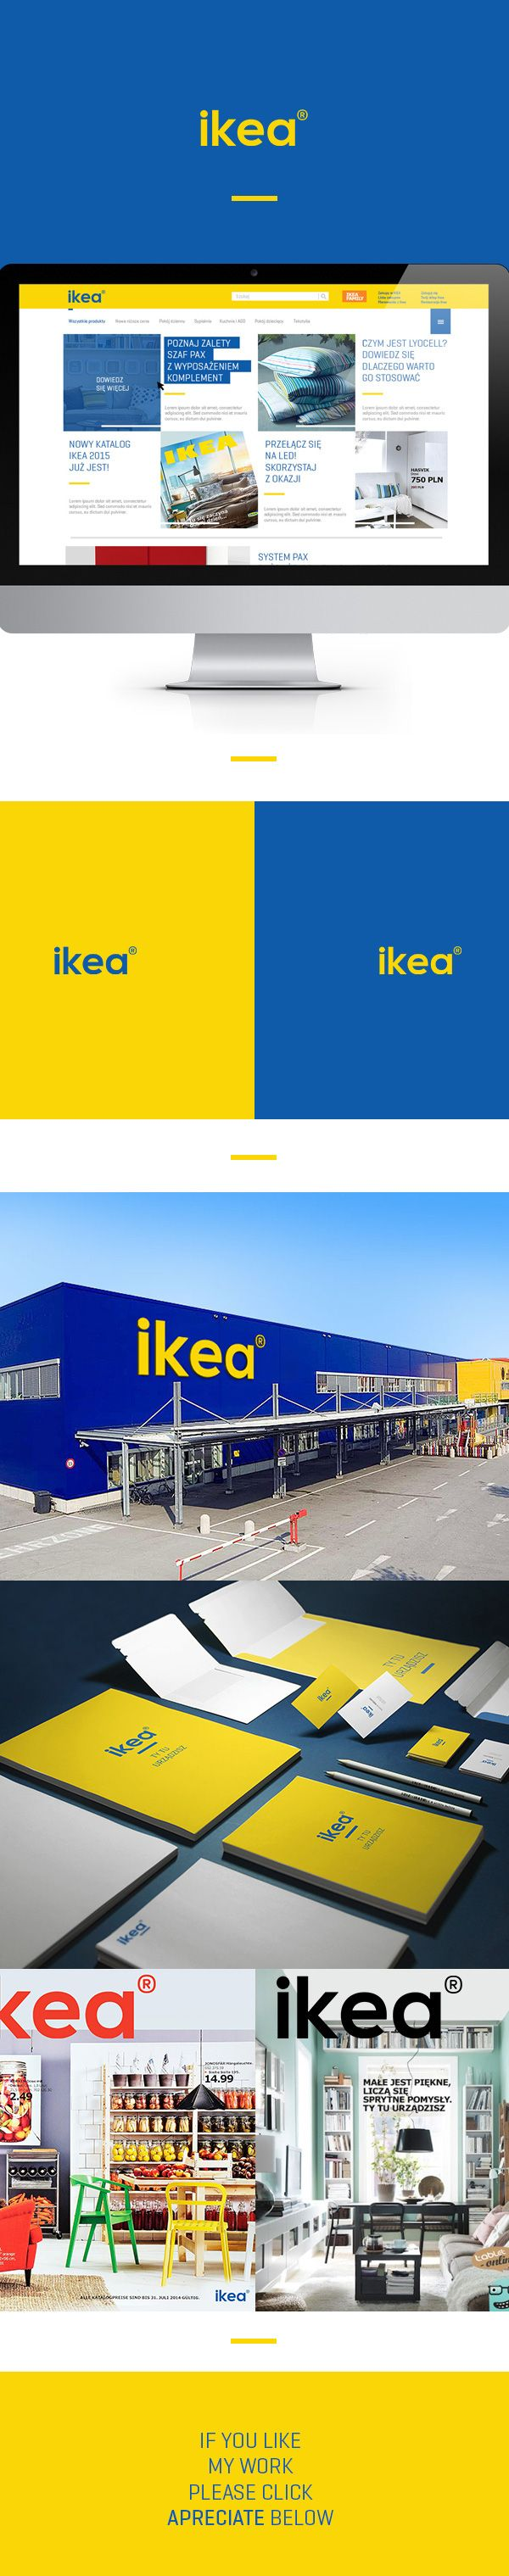 Ikea - Redesign Concept on Behance